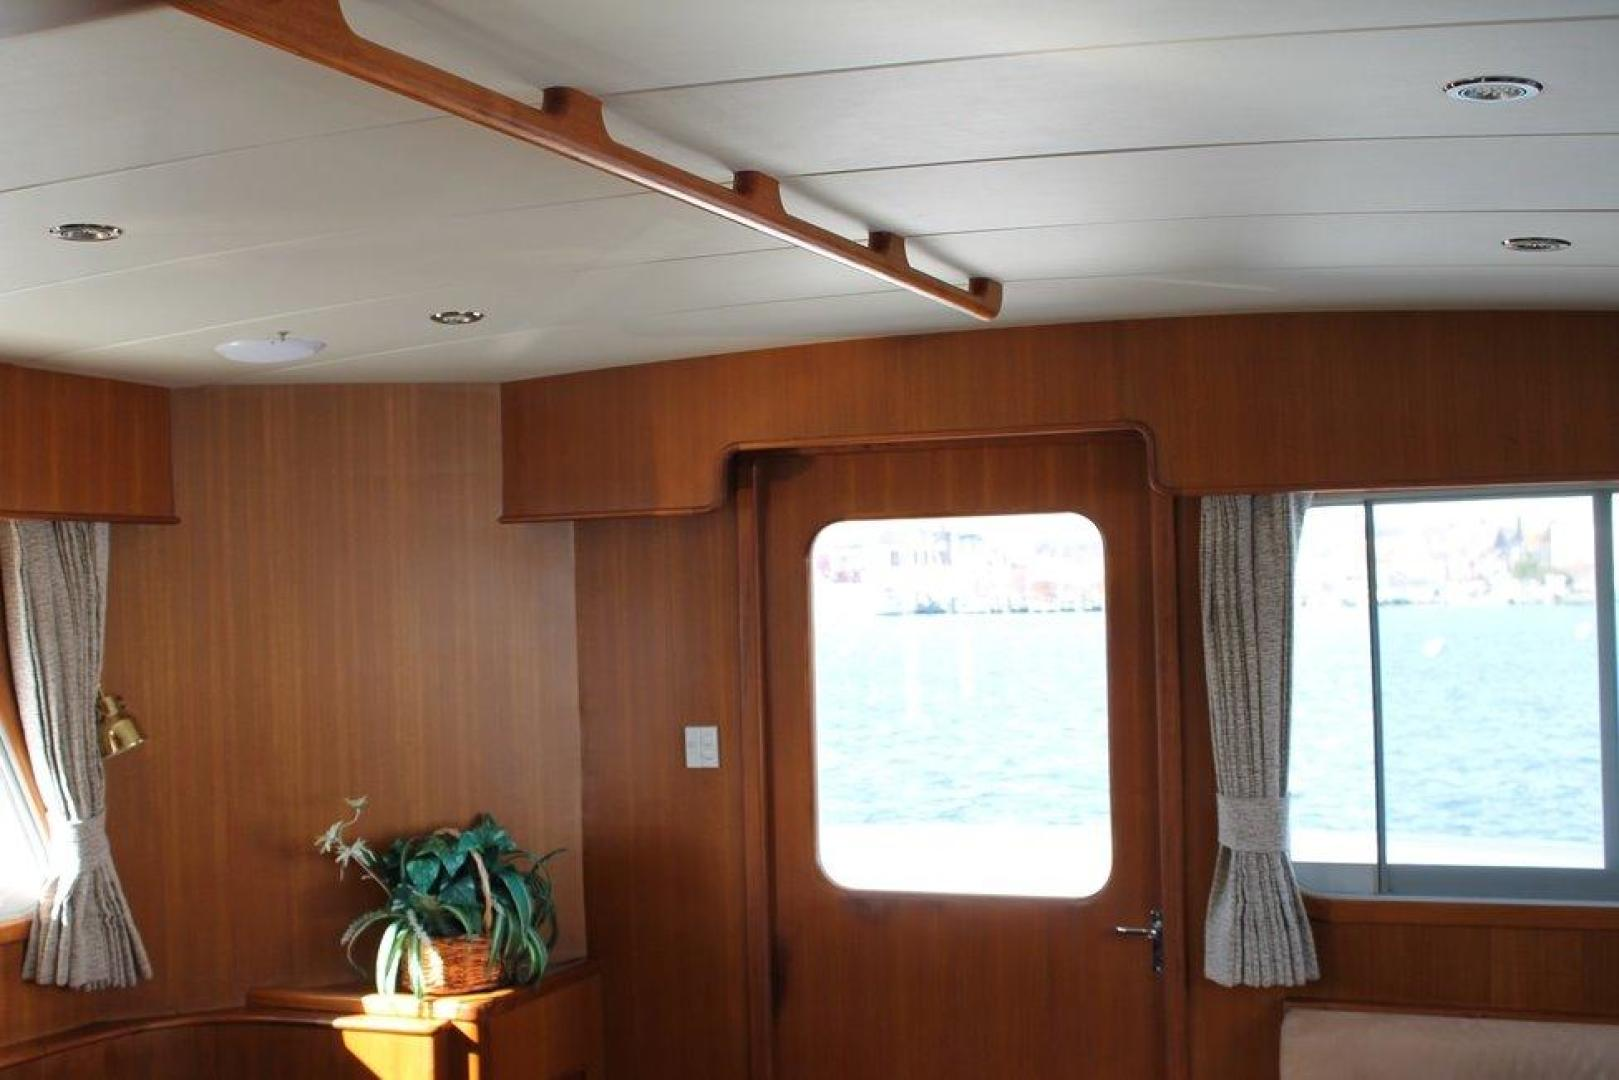 Integrity-496 Trawler 2007-Pier Pressure V St. Johns-Newfoundland And Labrador-Canada-Salon Headliner-920691 | Thumbnail